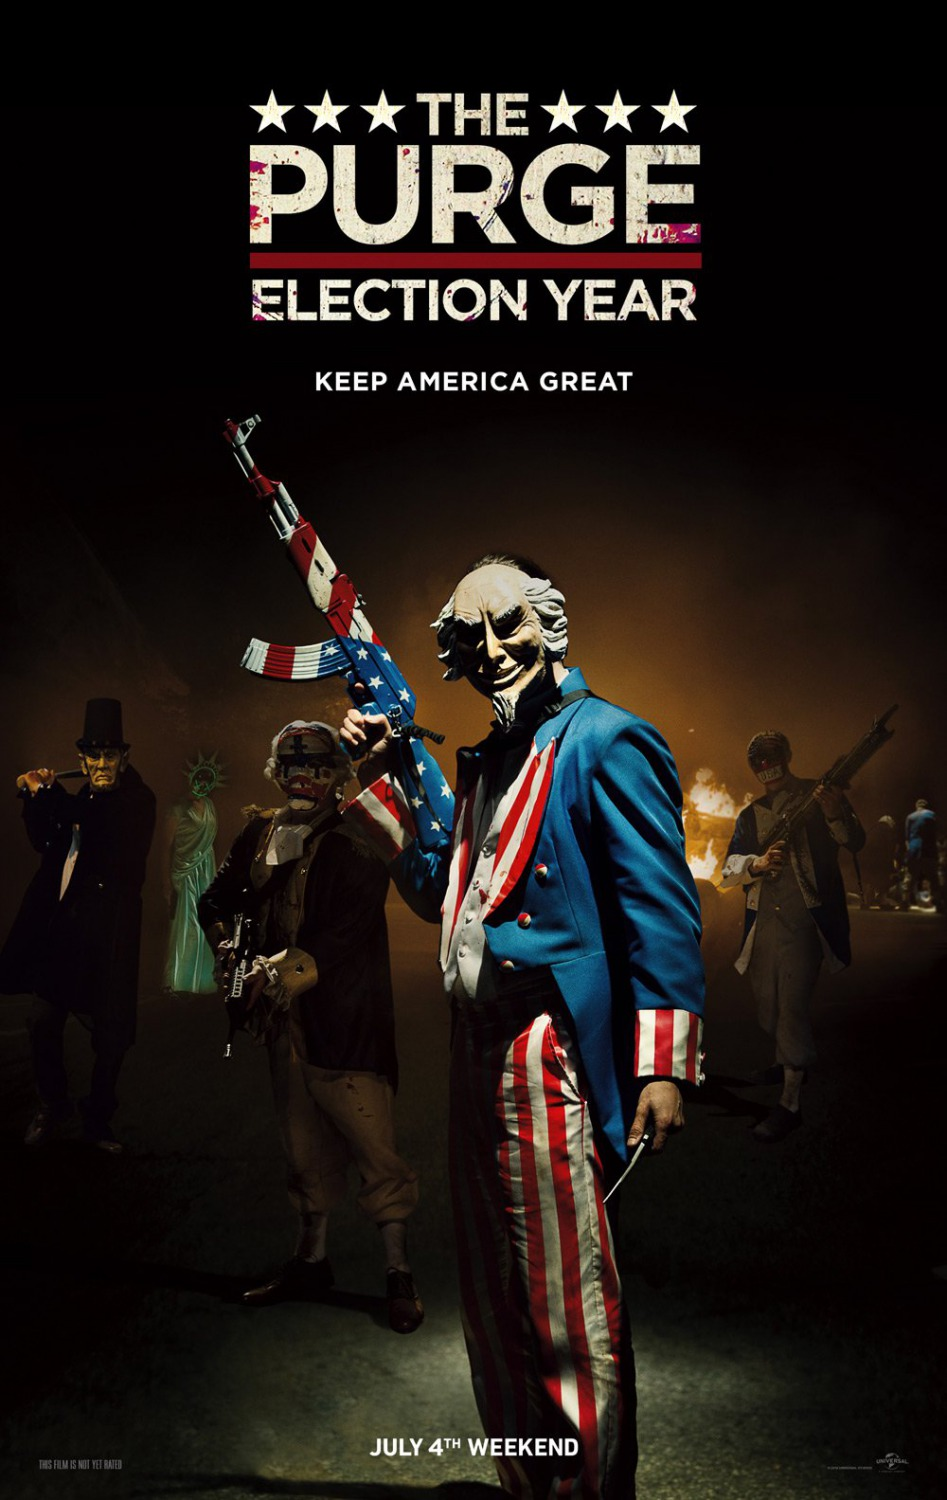 purge_election_year_ver2_xlg.jpg